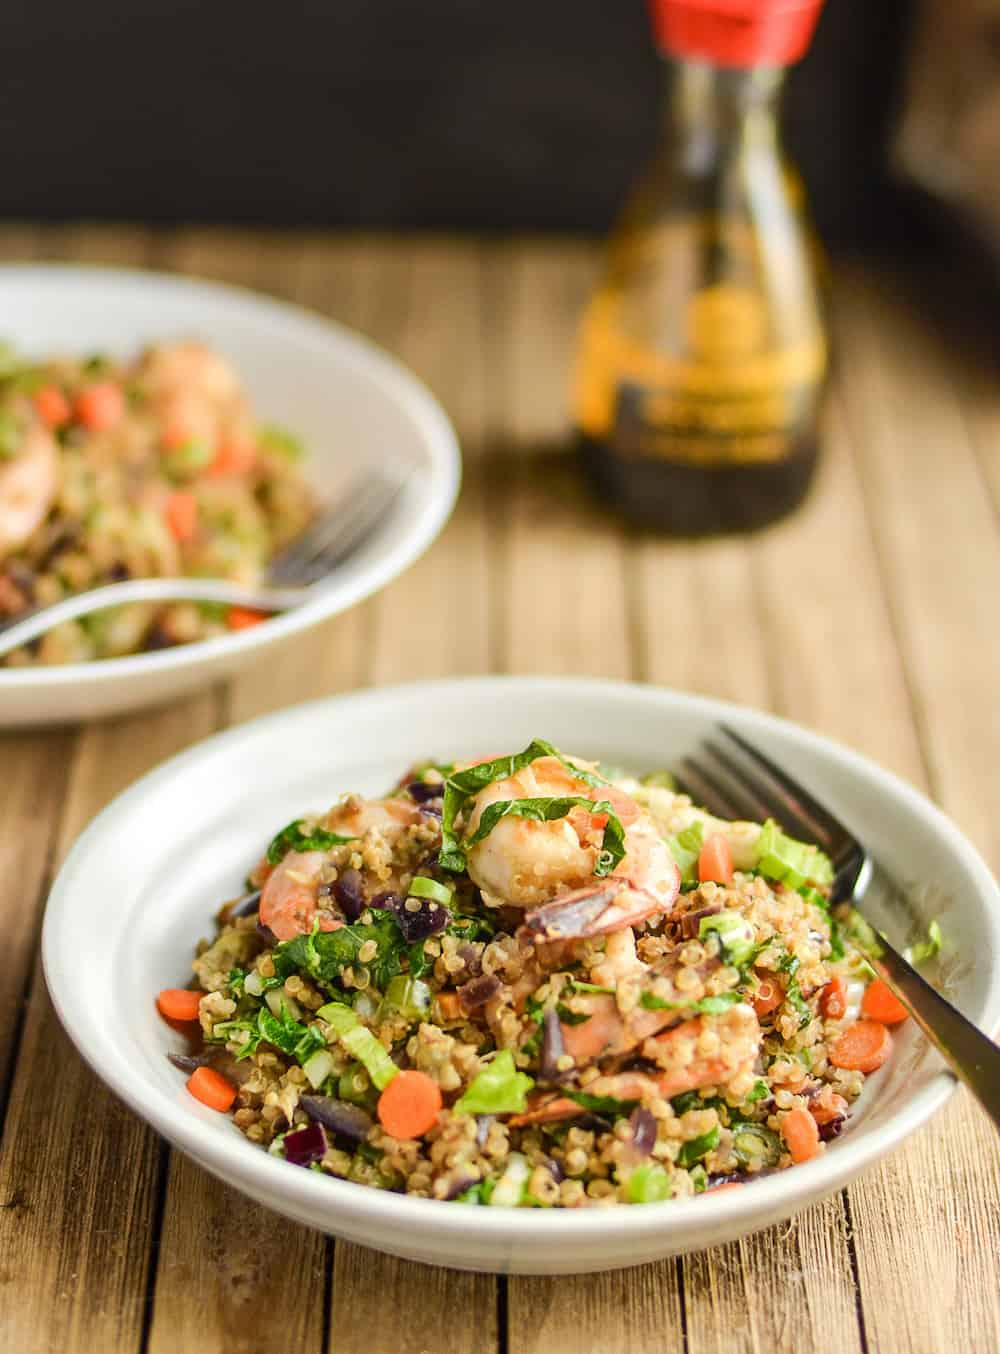 You'll love this delicious shrimp quinoa fried rice recipe! Full of crisp veggies, tasty shrimp, and with a subtle flavor of garlic and ginger. So yummy!